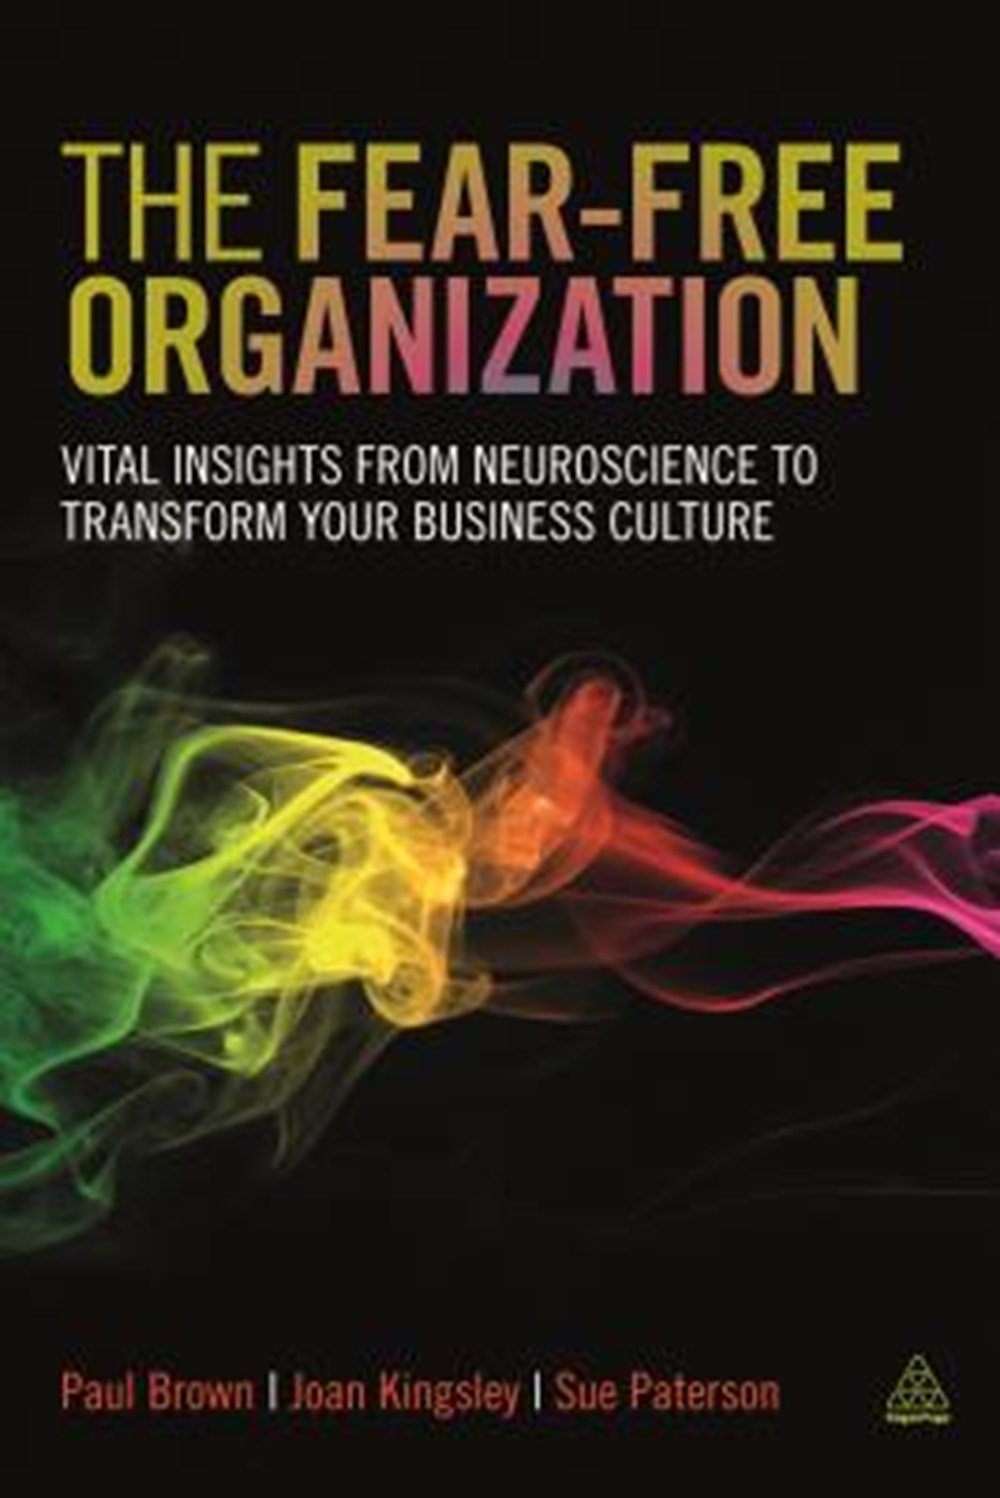 Fear-Free Organization Vital Insights from Neuroscience to Transform Your Business Culture